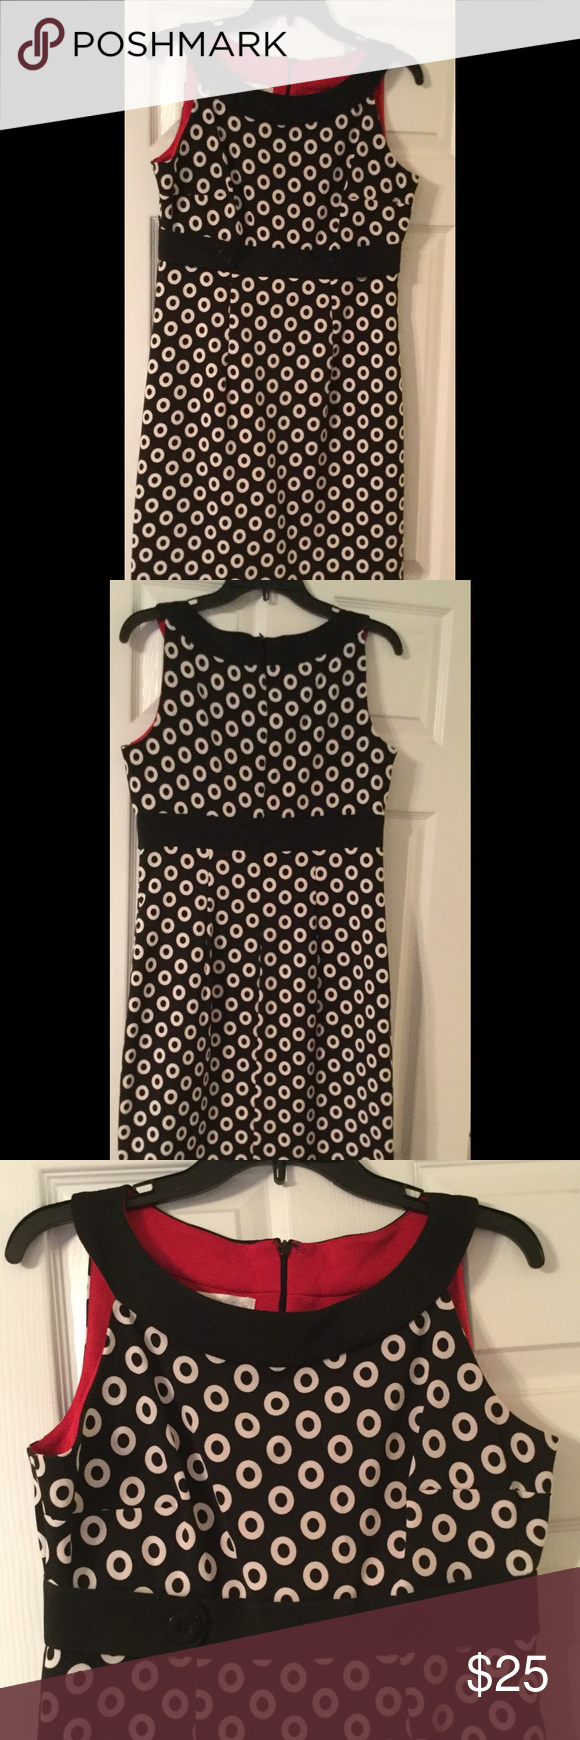 Black circle dress Beautiful black sleeveless dress with circle print. Worn once to a wedding. Front has button detail. London Times Dresses